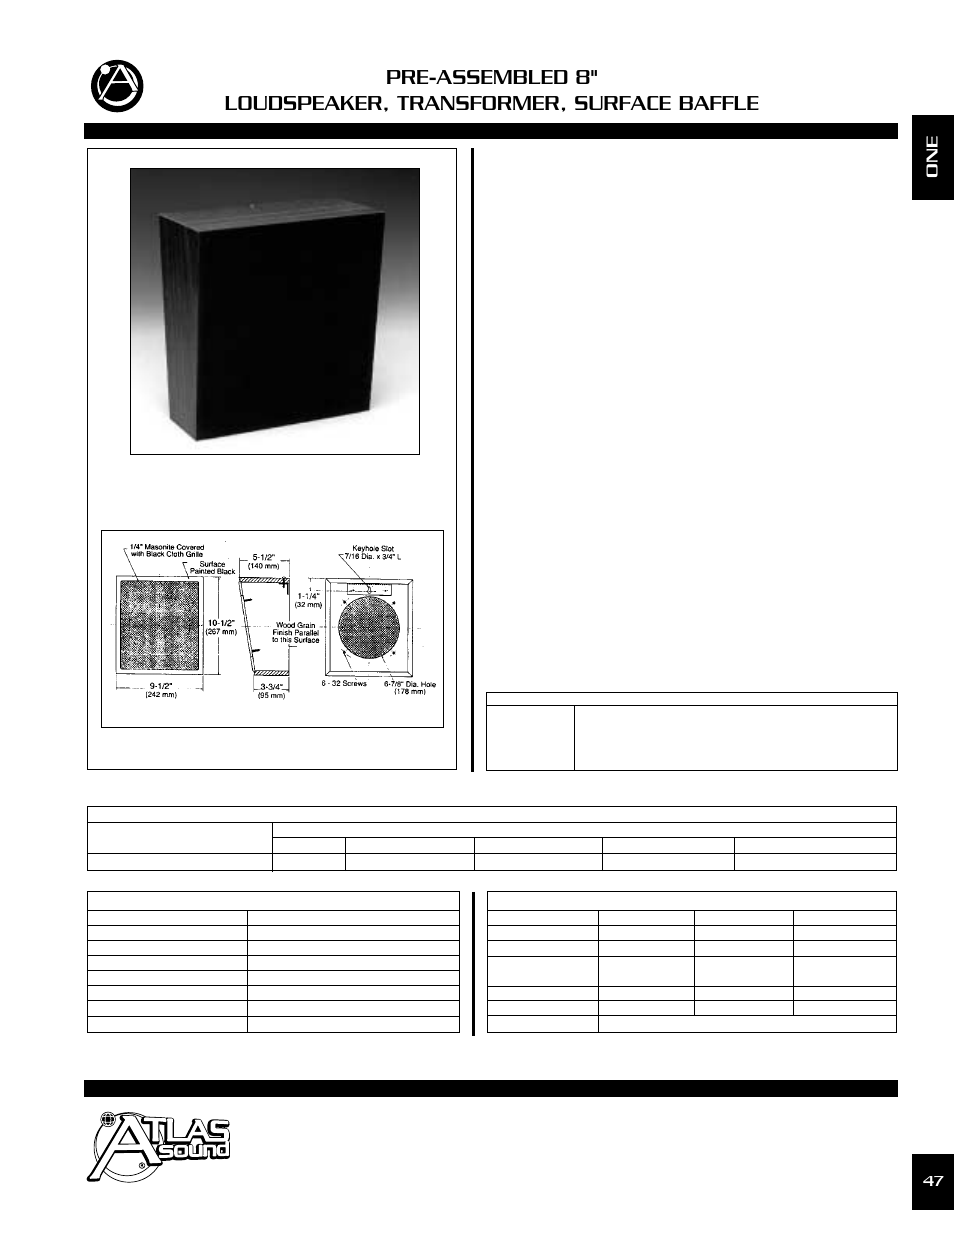 72v Wiring Diagram Easy Diagrams Atlas Sound Loudspeaker Wd417 72 User Manual 2 Pages Rh Manualsdir Com 3 Way Switch Residential Electrical